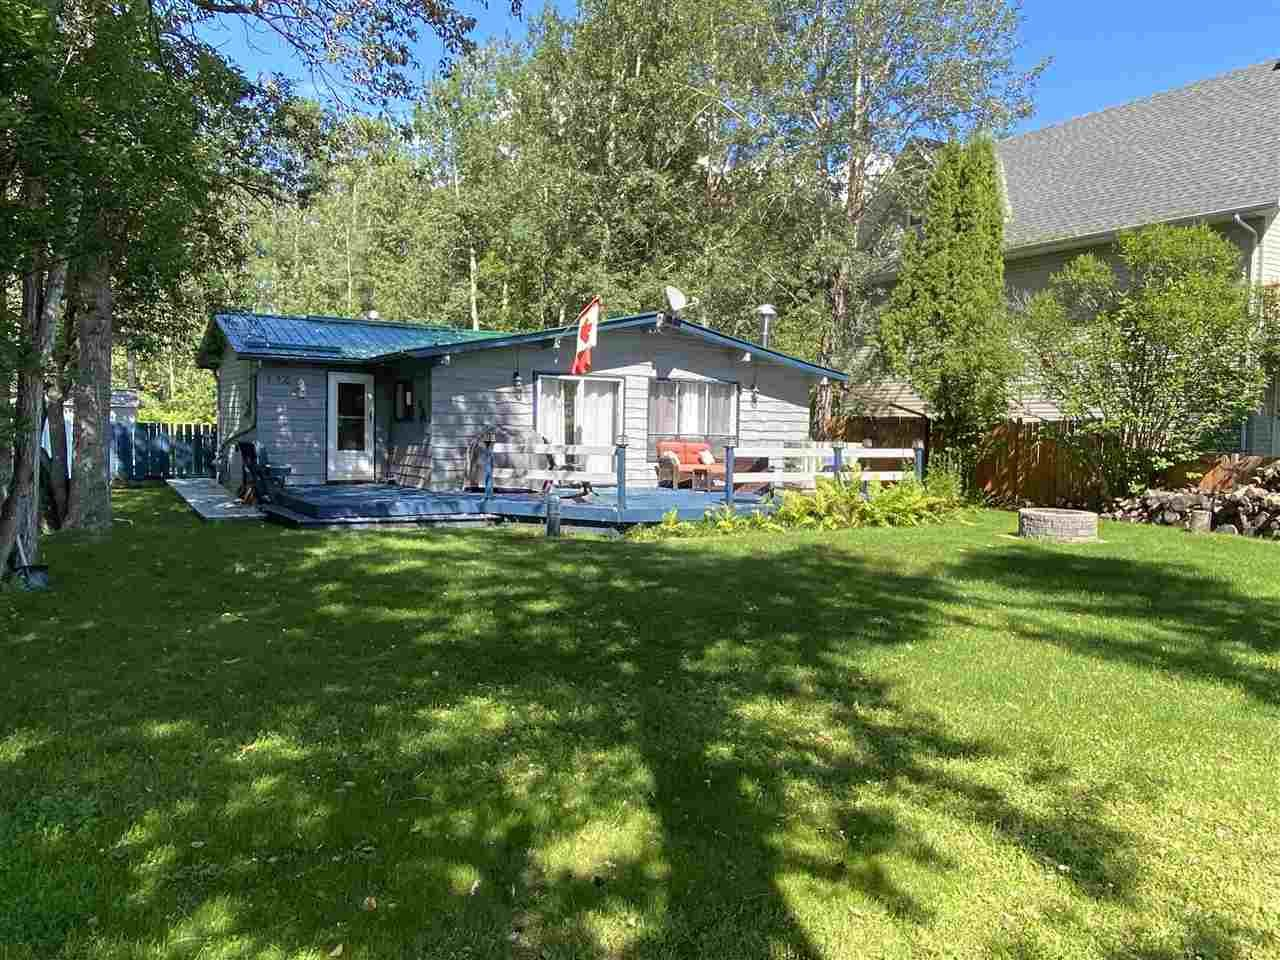 Main Photo: C12 Willow Rd: Rural Leduc County House for sale : MLS®# E4229191